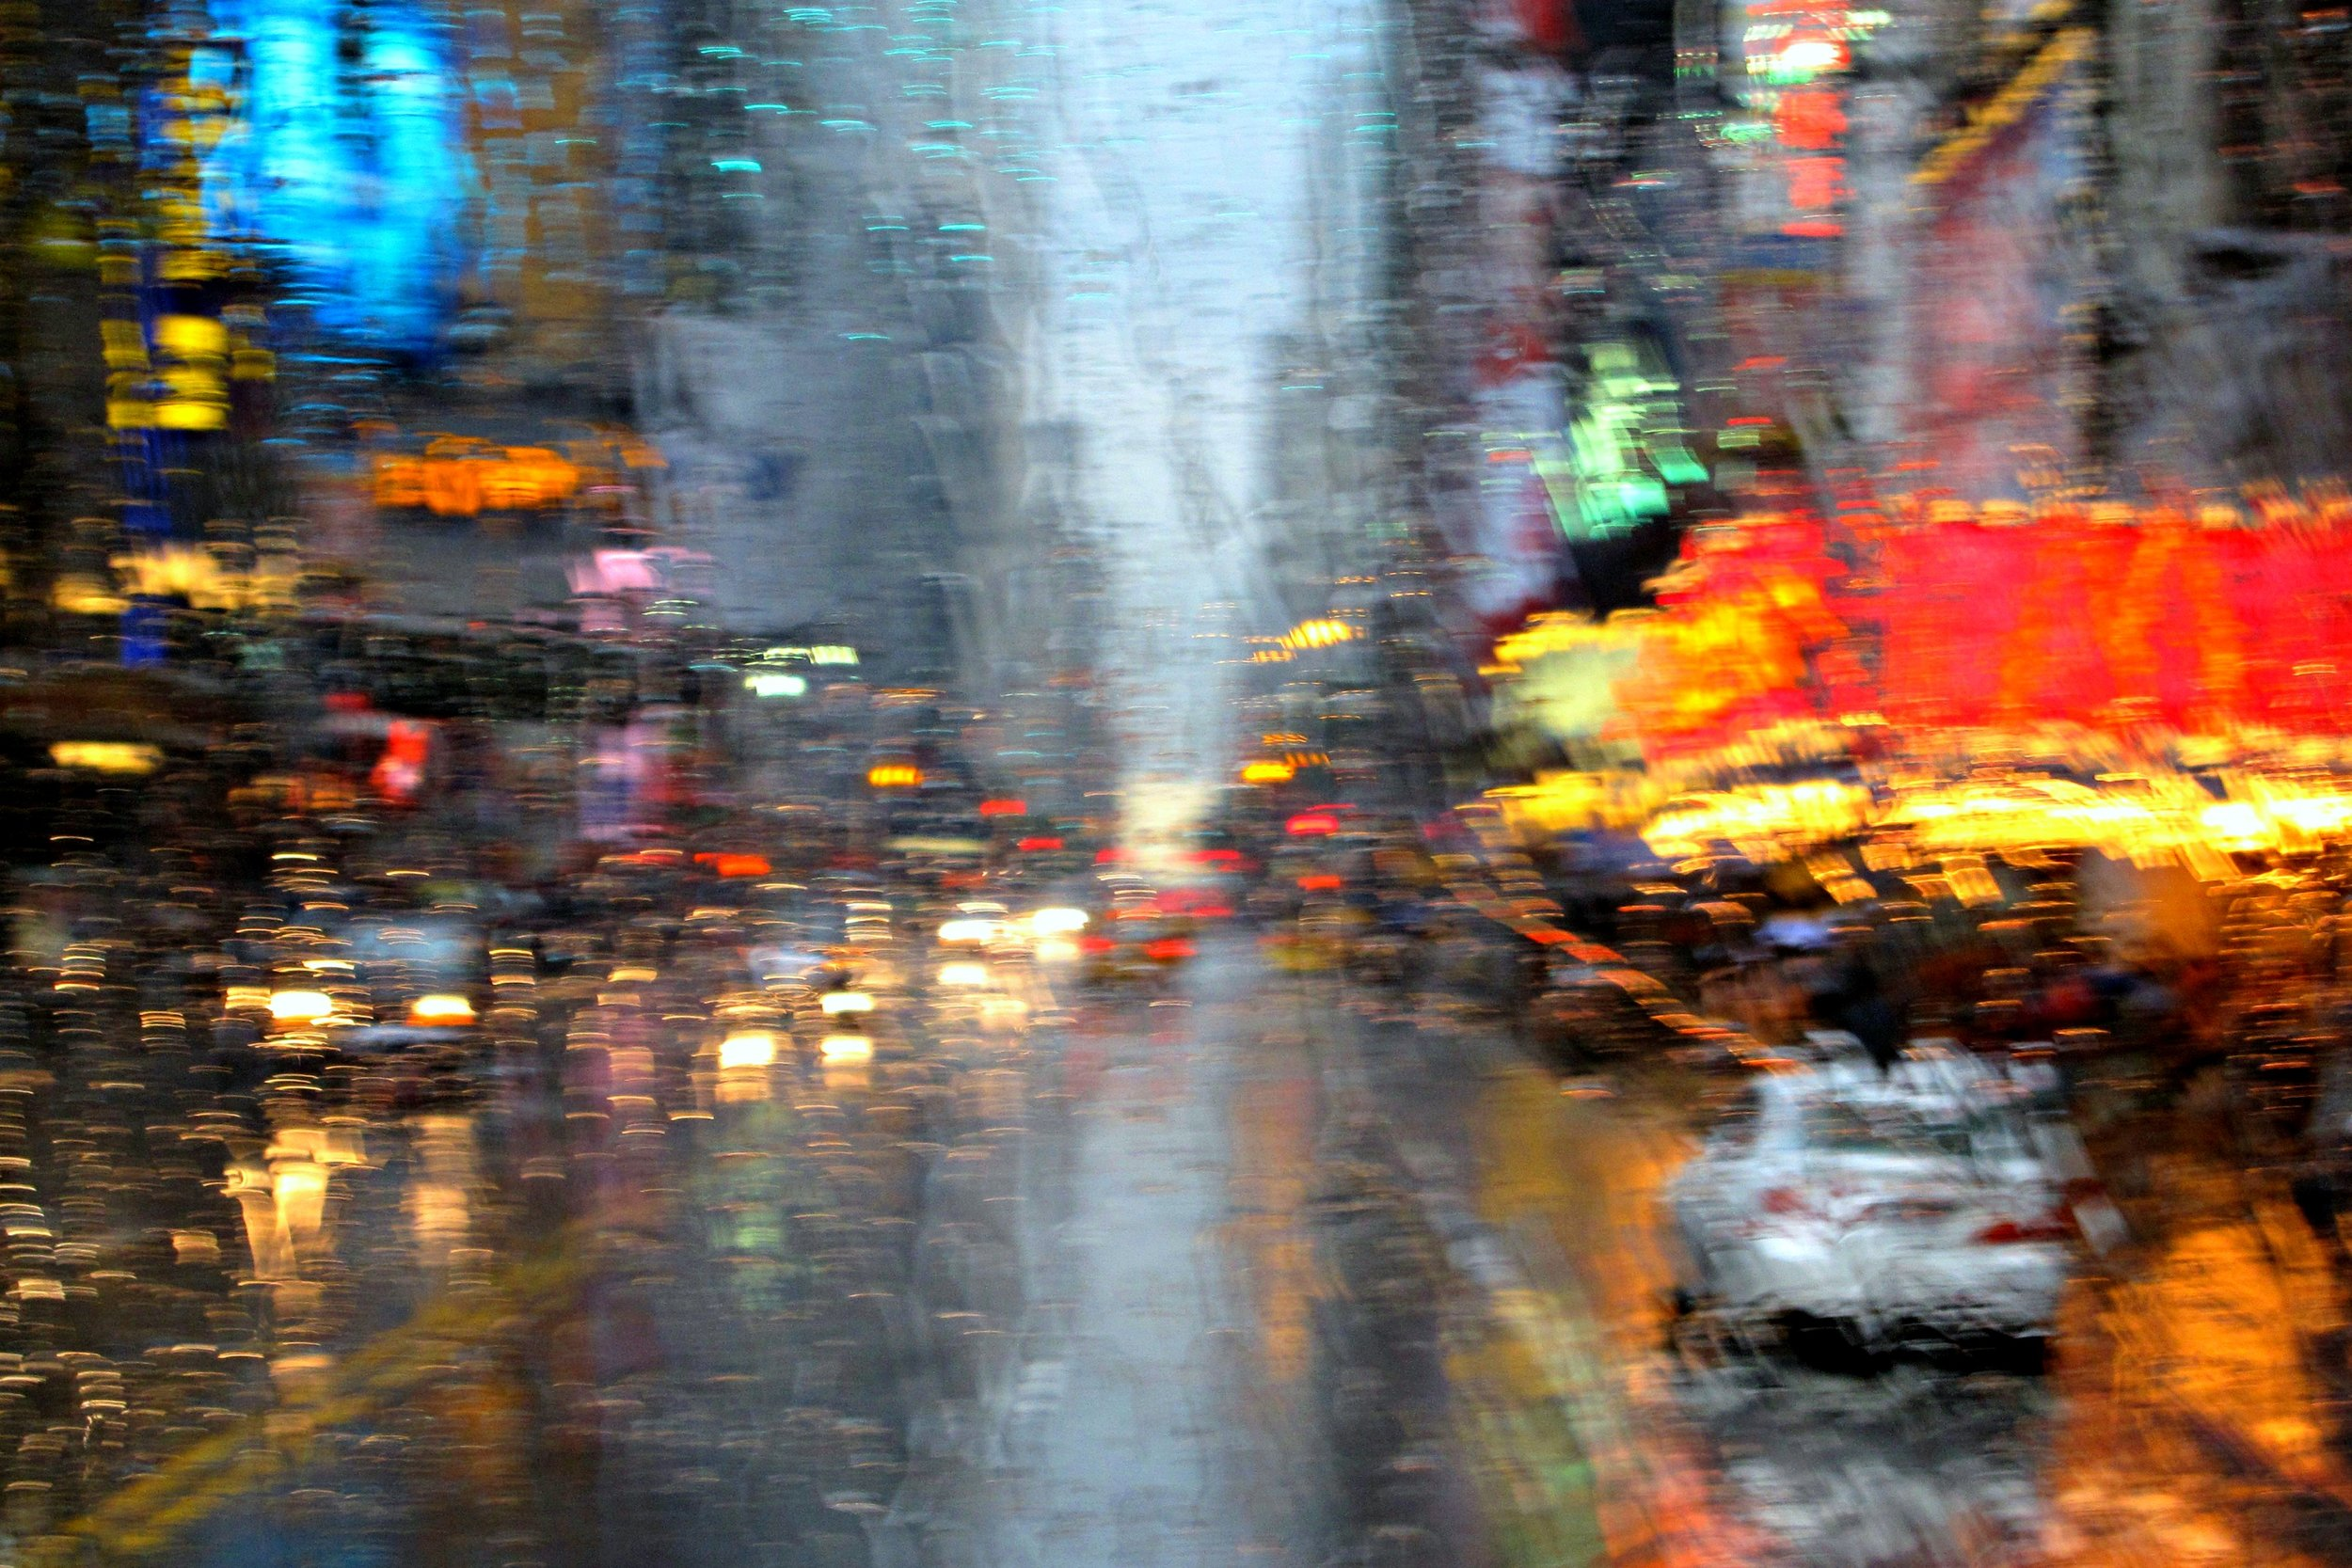 NYC in the rain from the front of a bus